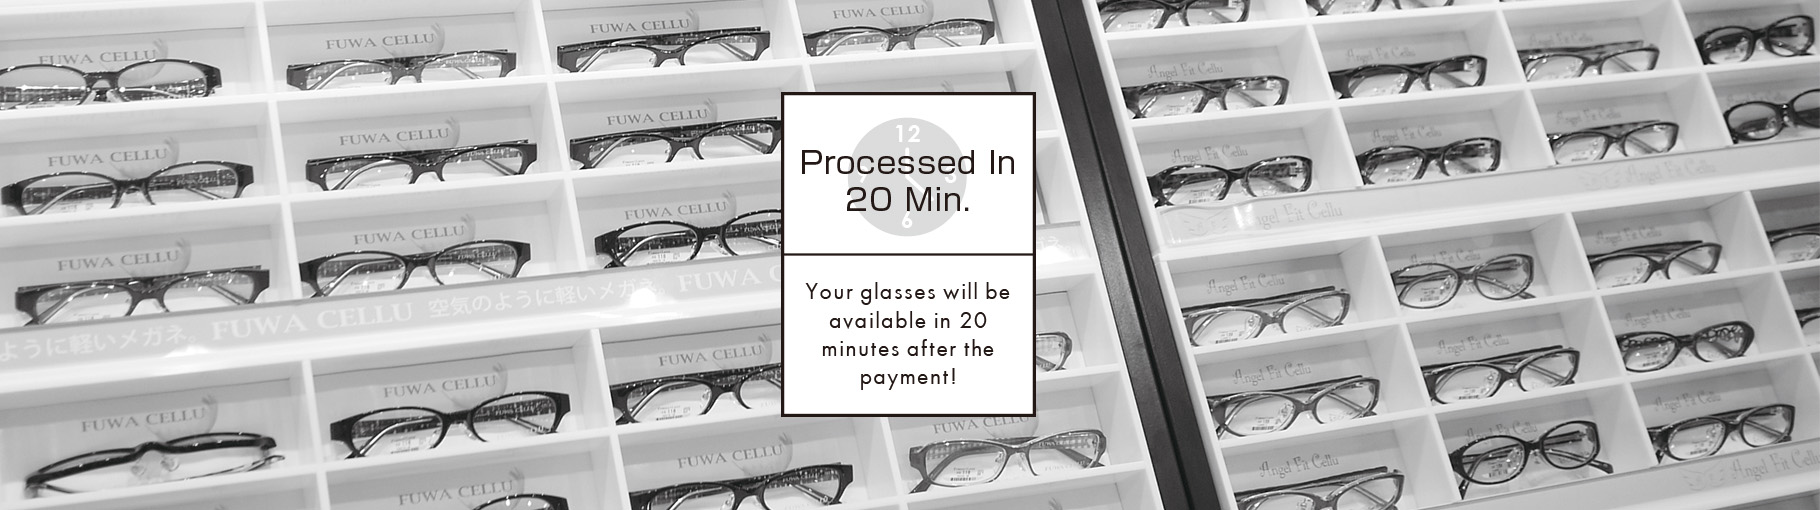 Processed In 20 Min. Your glasses will be available in 20 minutes after the payment!